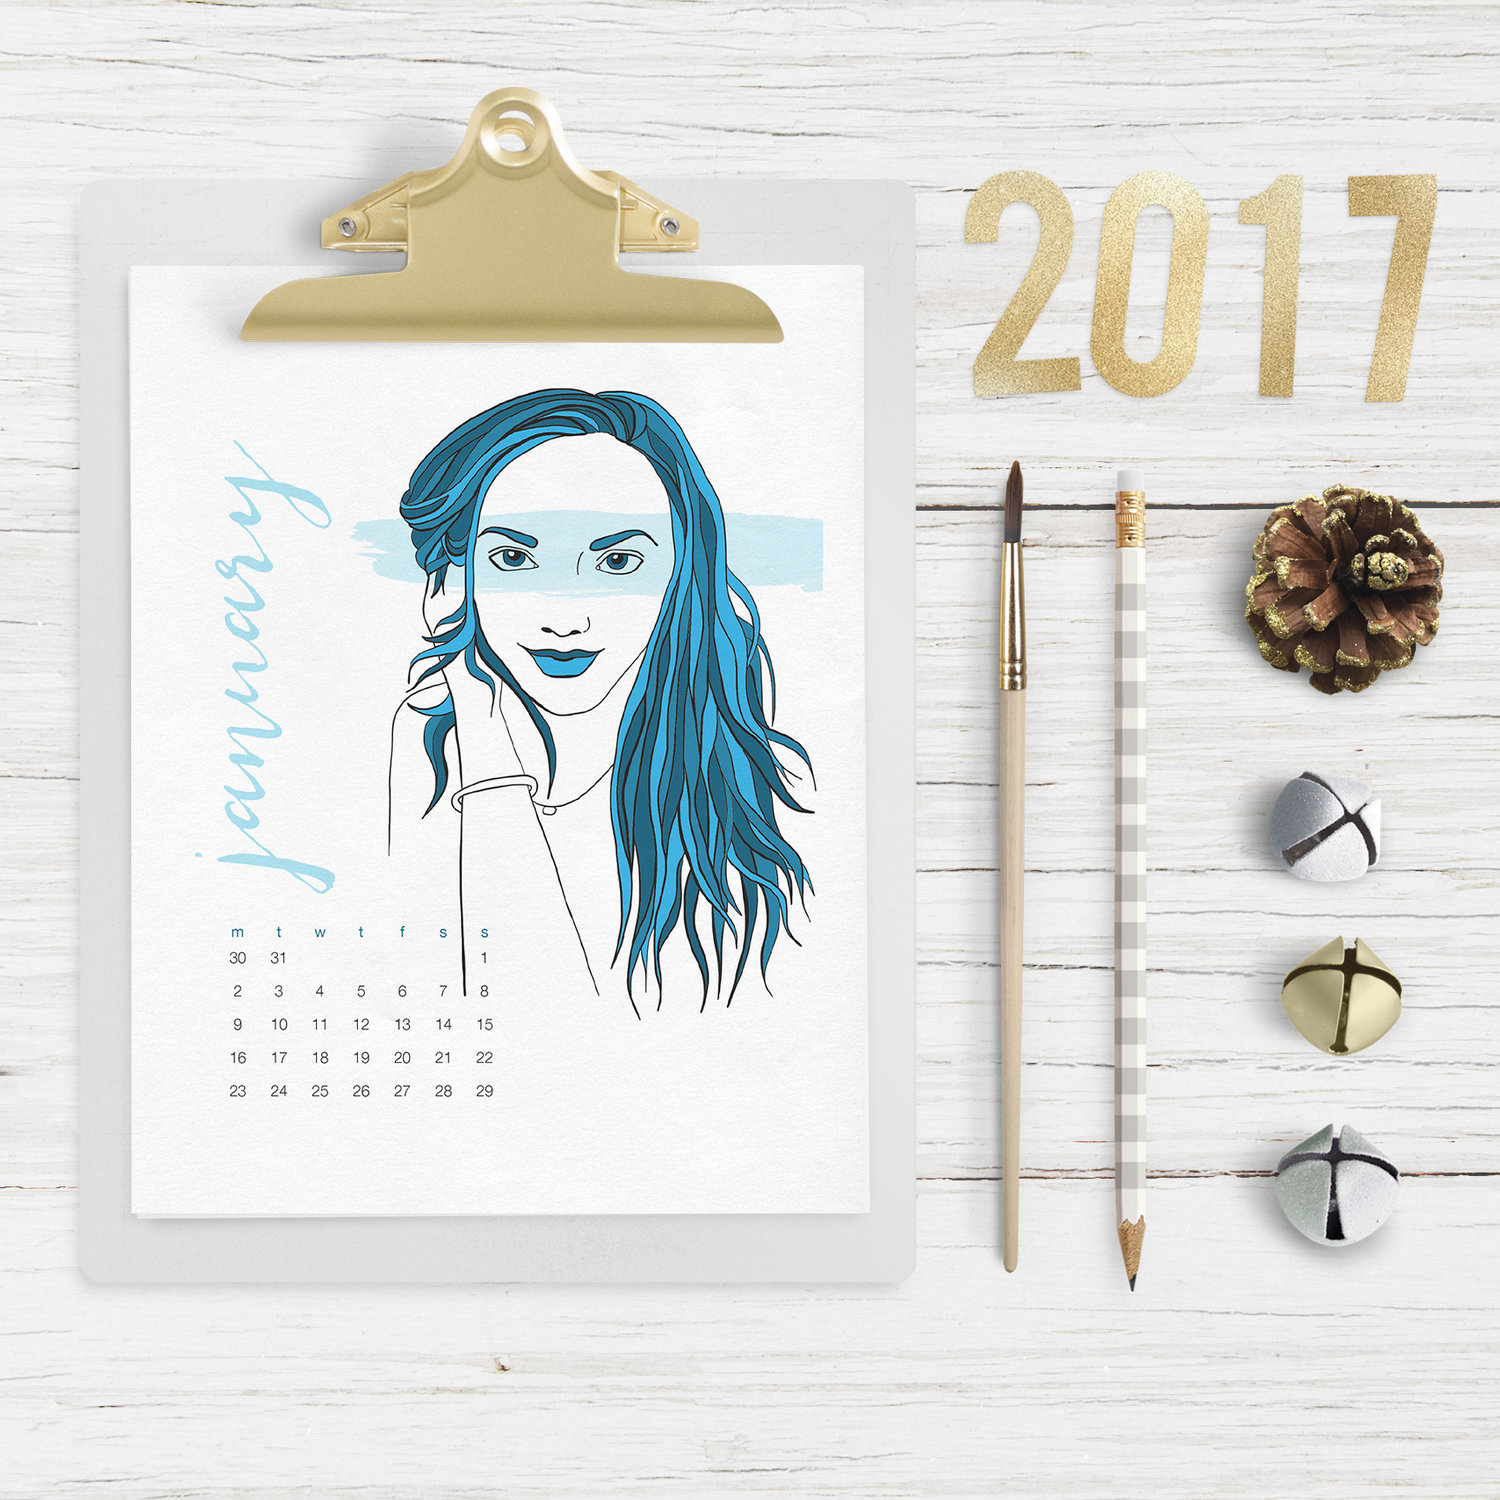 Downloadable 2017 Illustrated Calendar by BrownPaperBunny